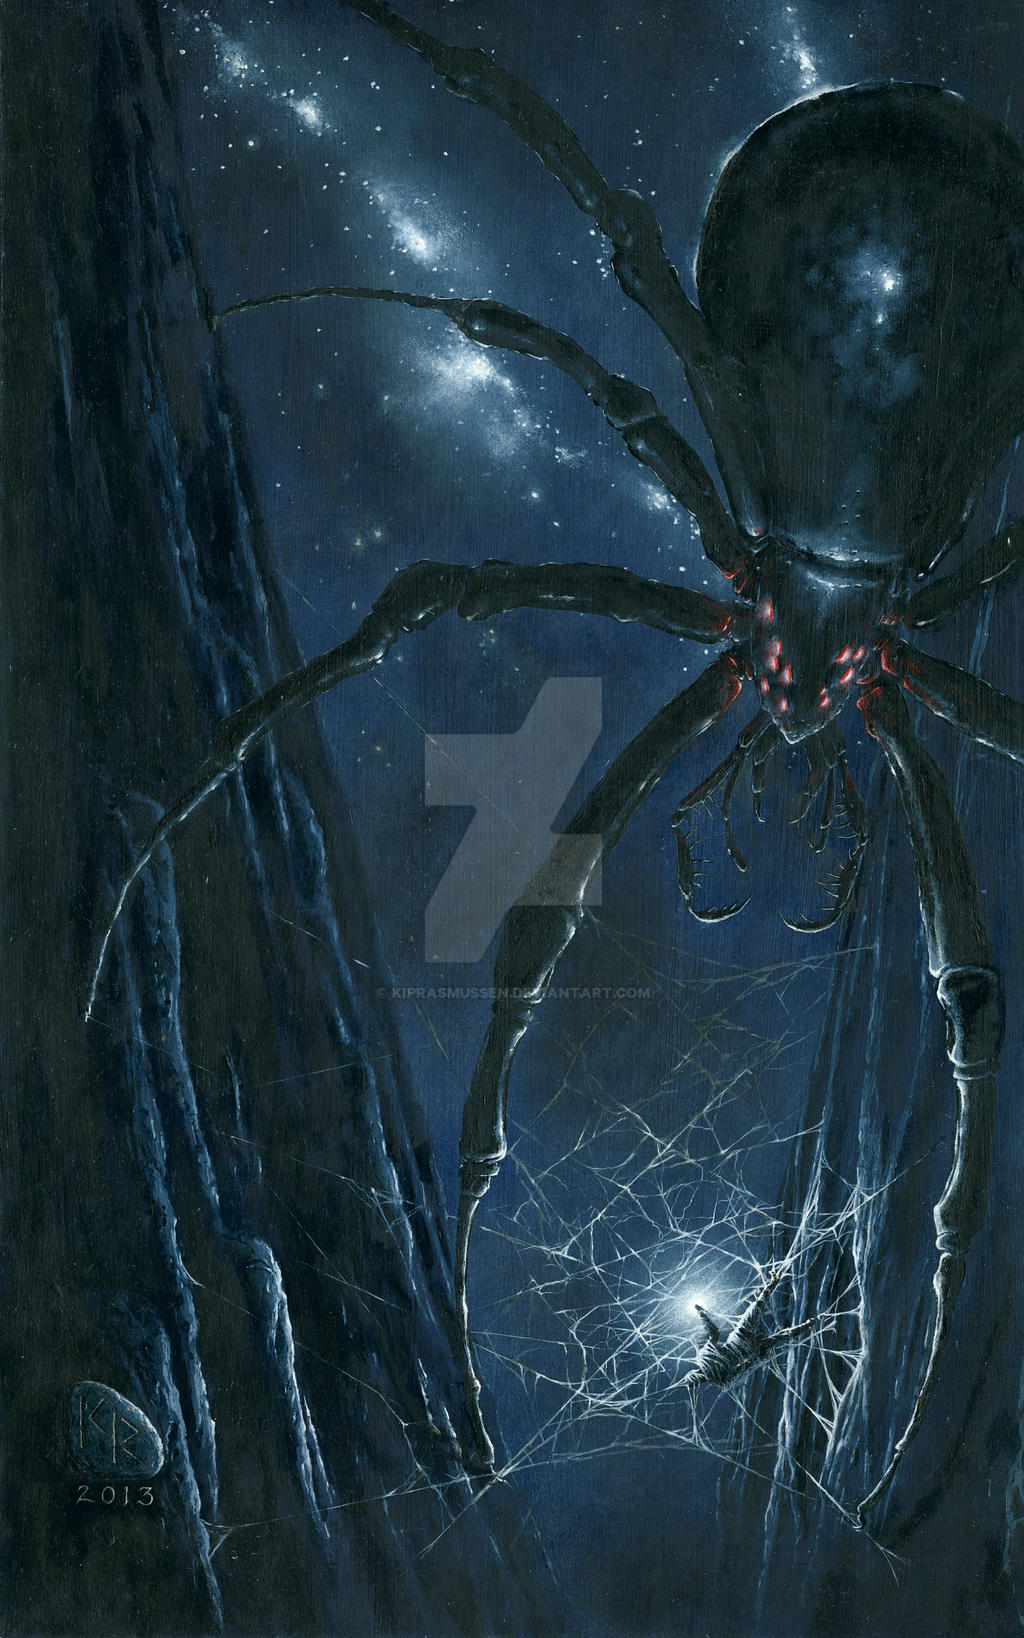 Morgoth Ensnared by Ungoliant by KipRasmussen on DeviantArt Ungoliant Vs Balrog